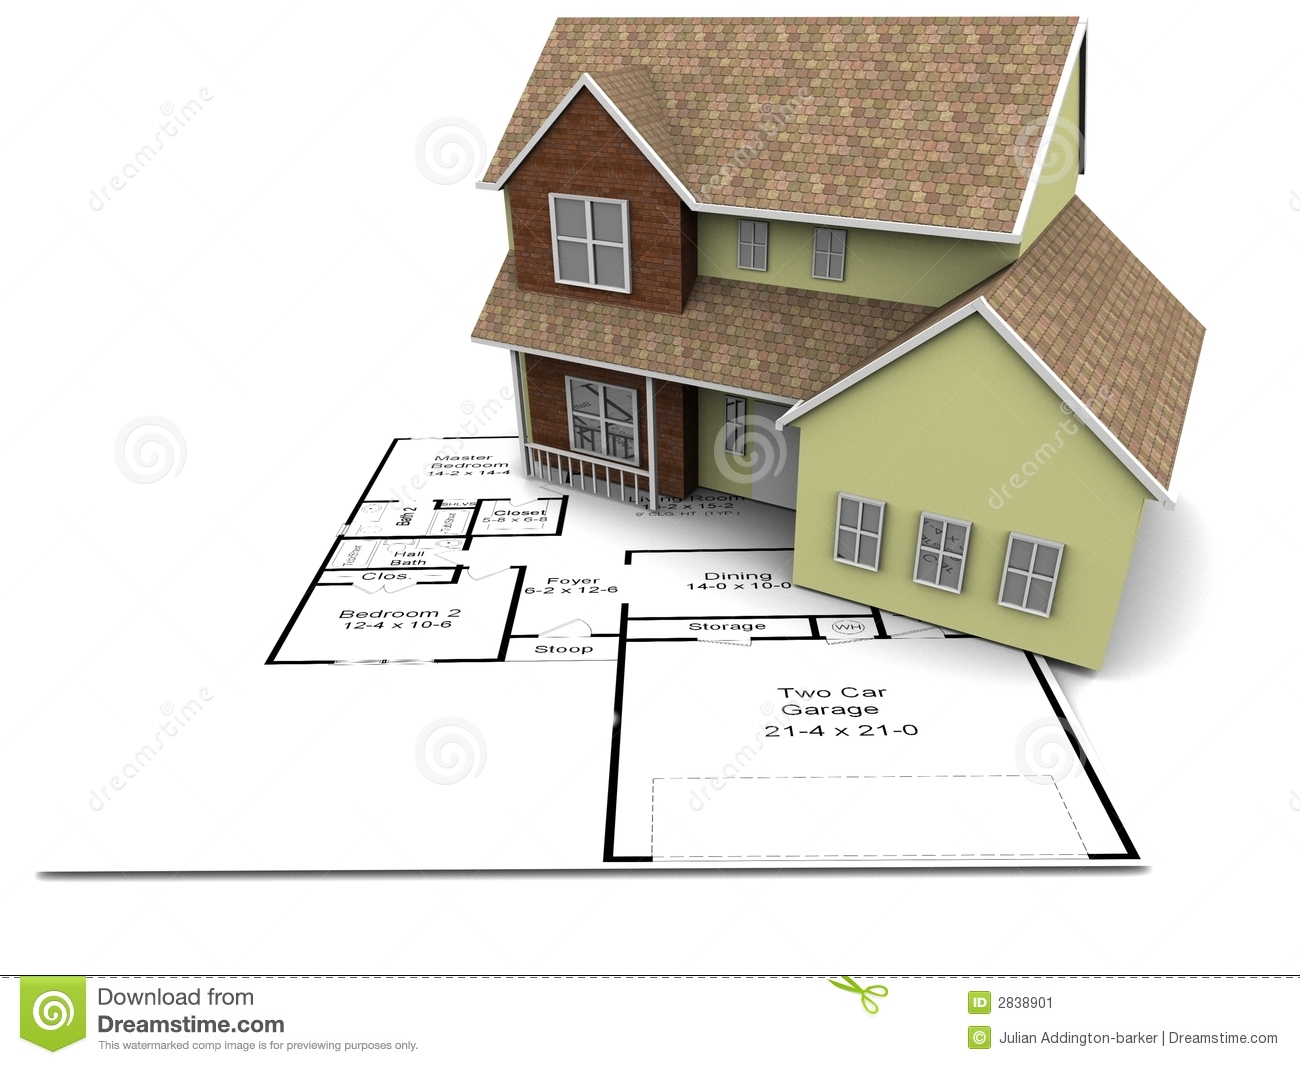 New house plans stock illustration illustration of house for New house plans